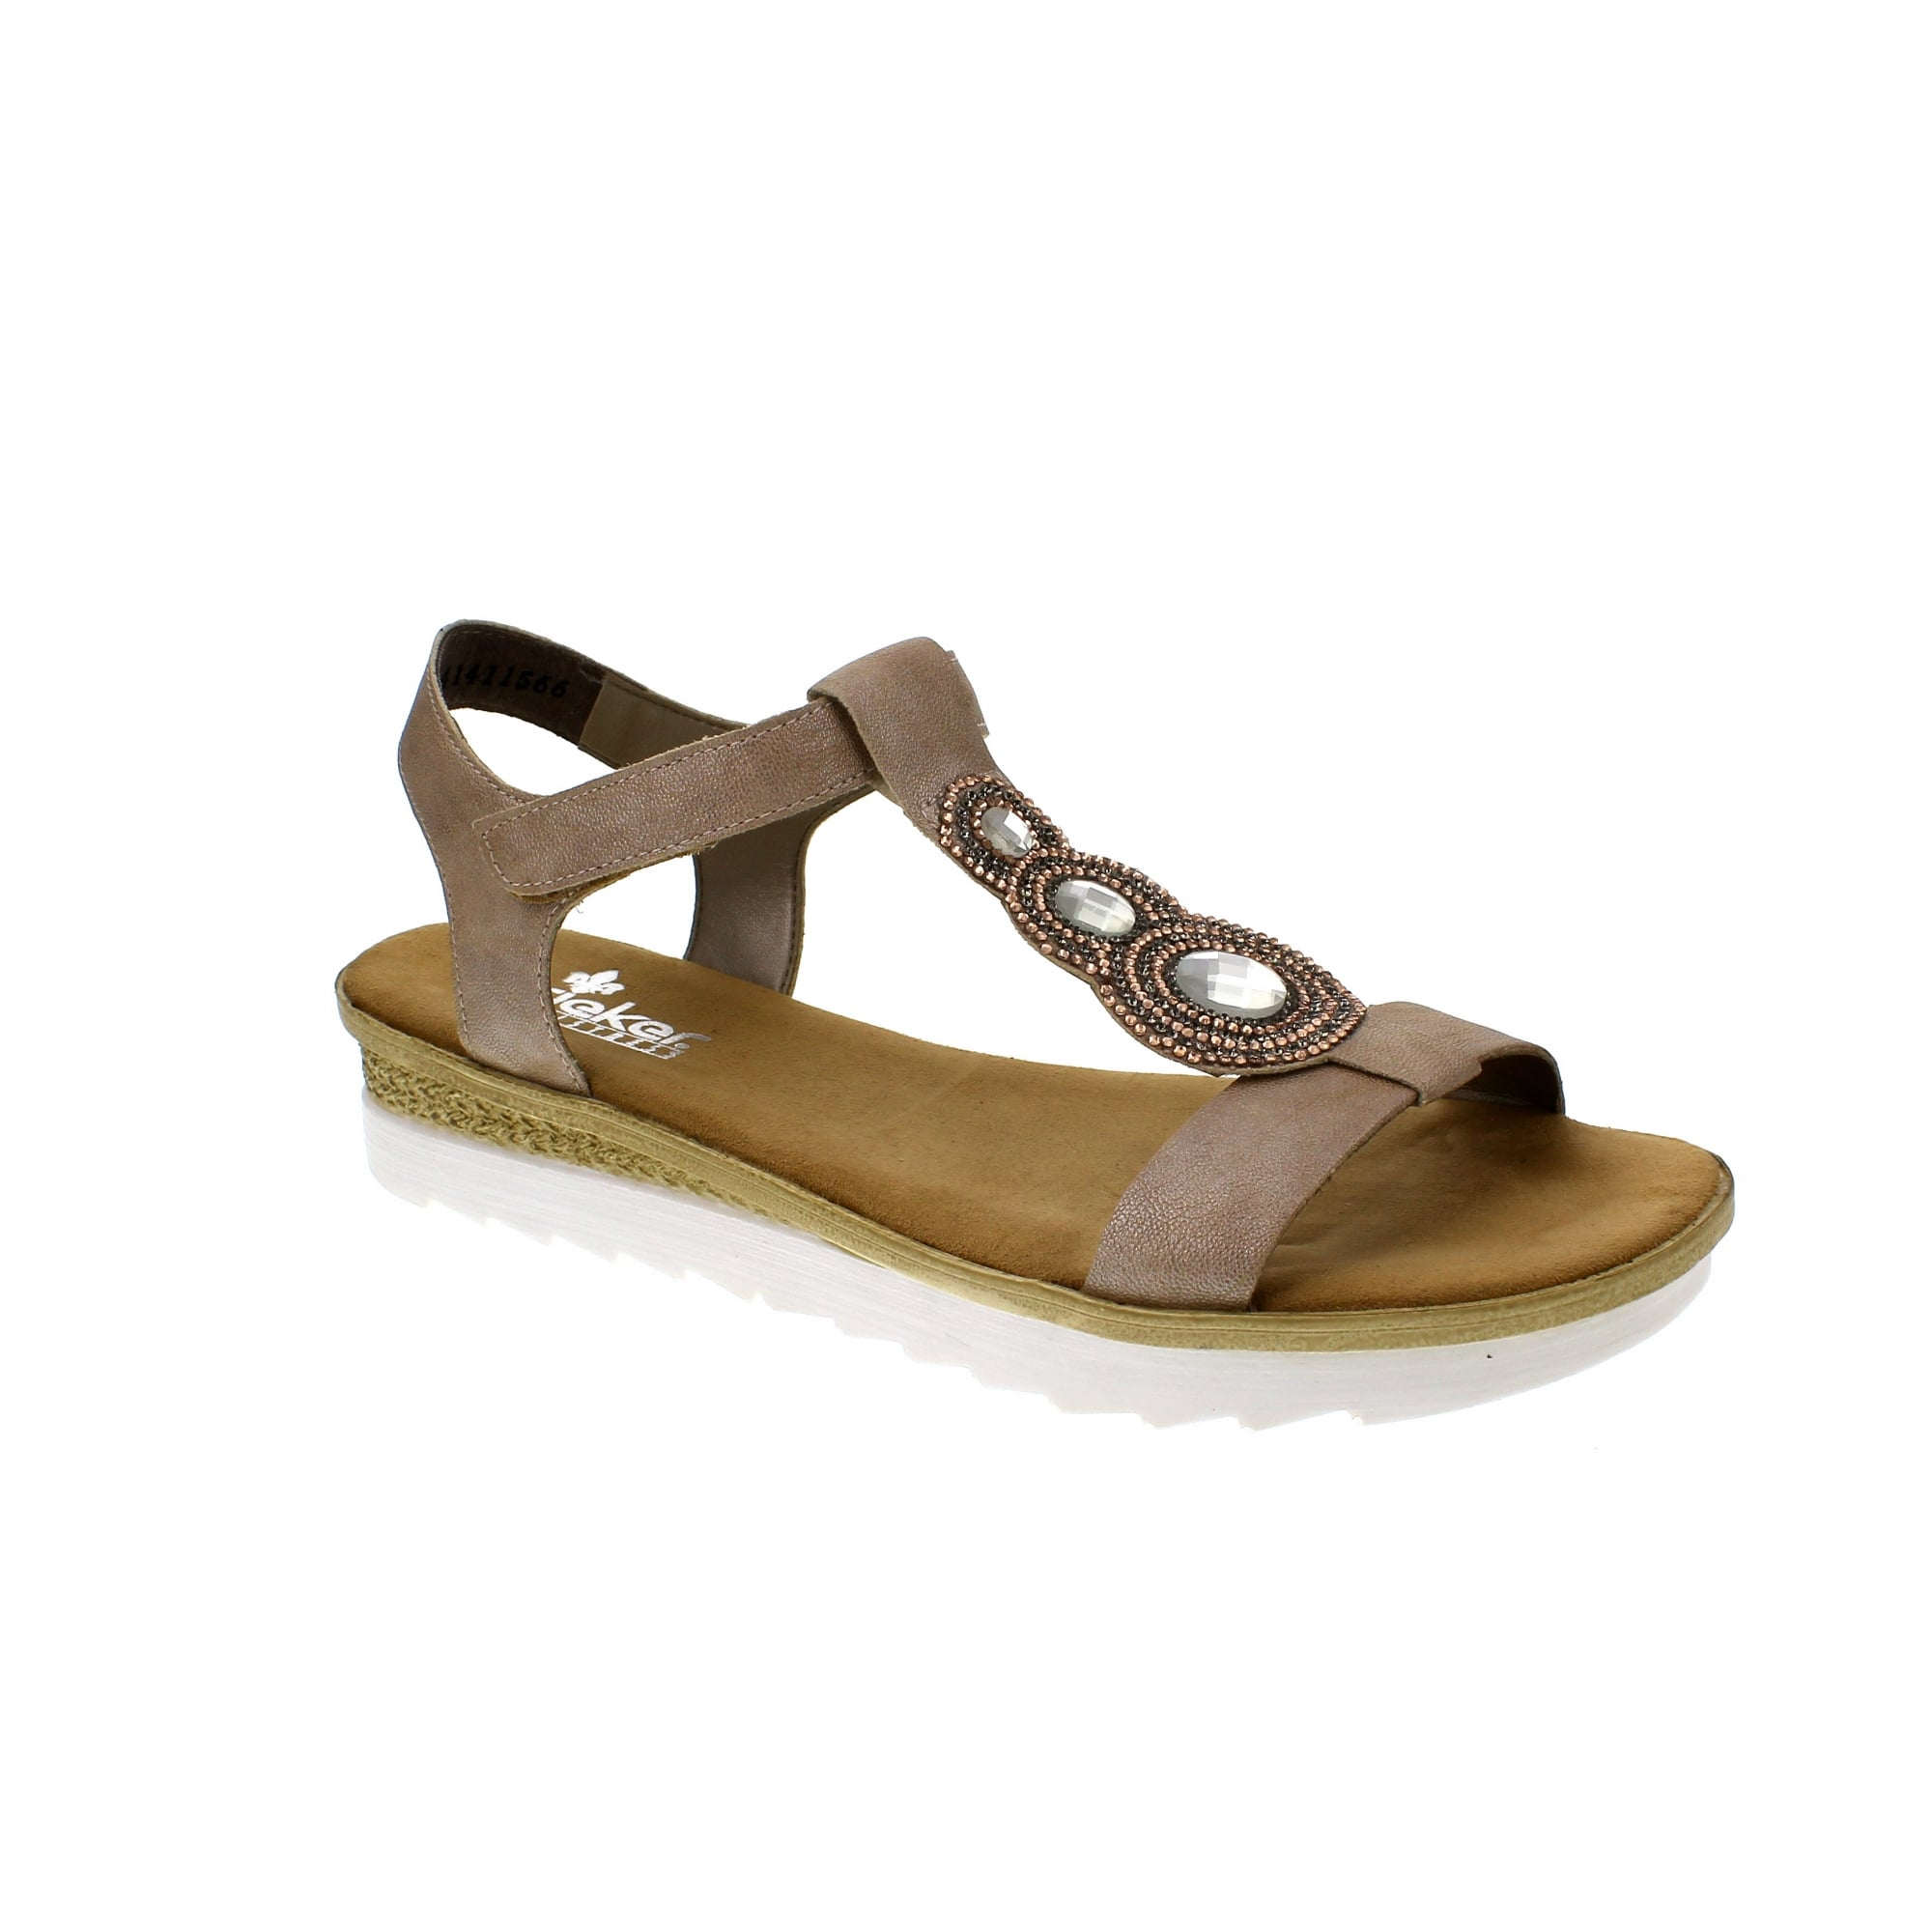 f989786e8 Rieker 63184-62 Taupe Womens Sandals